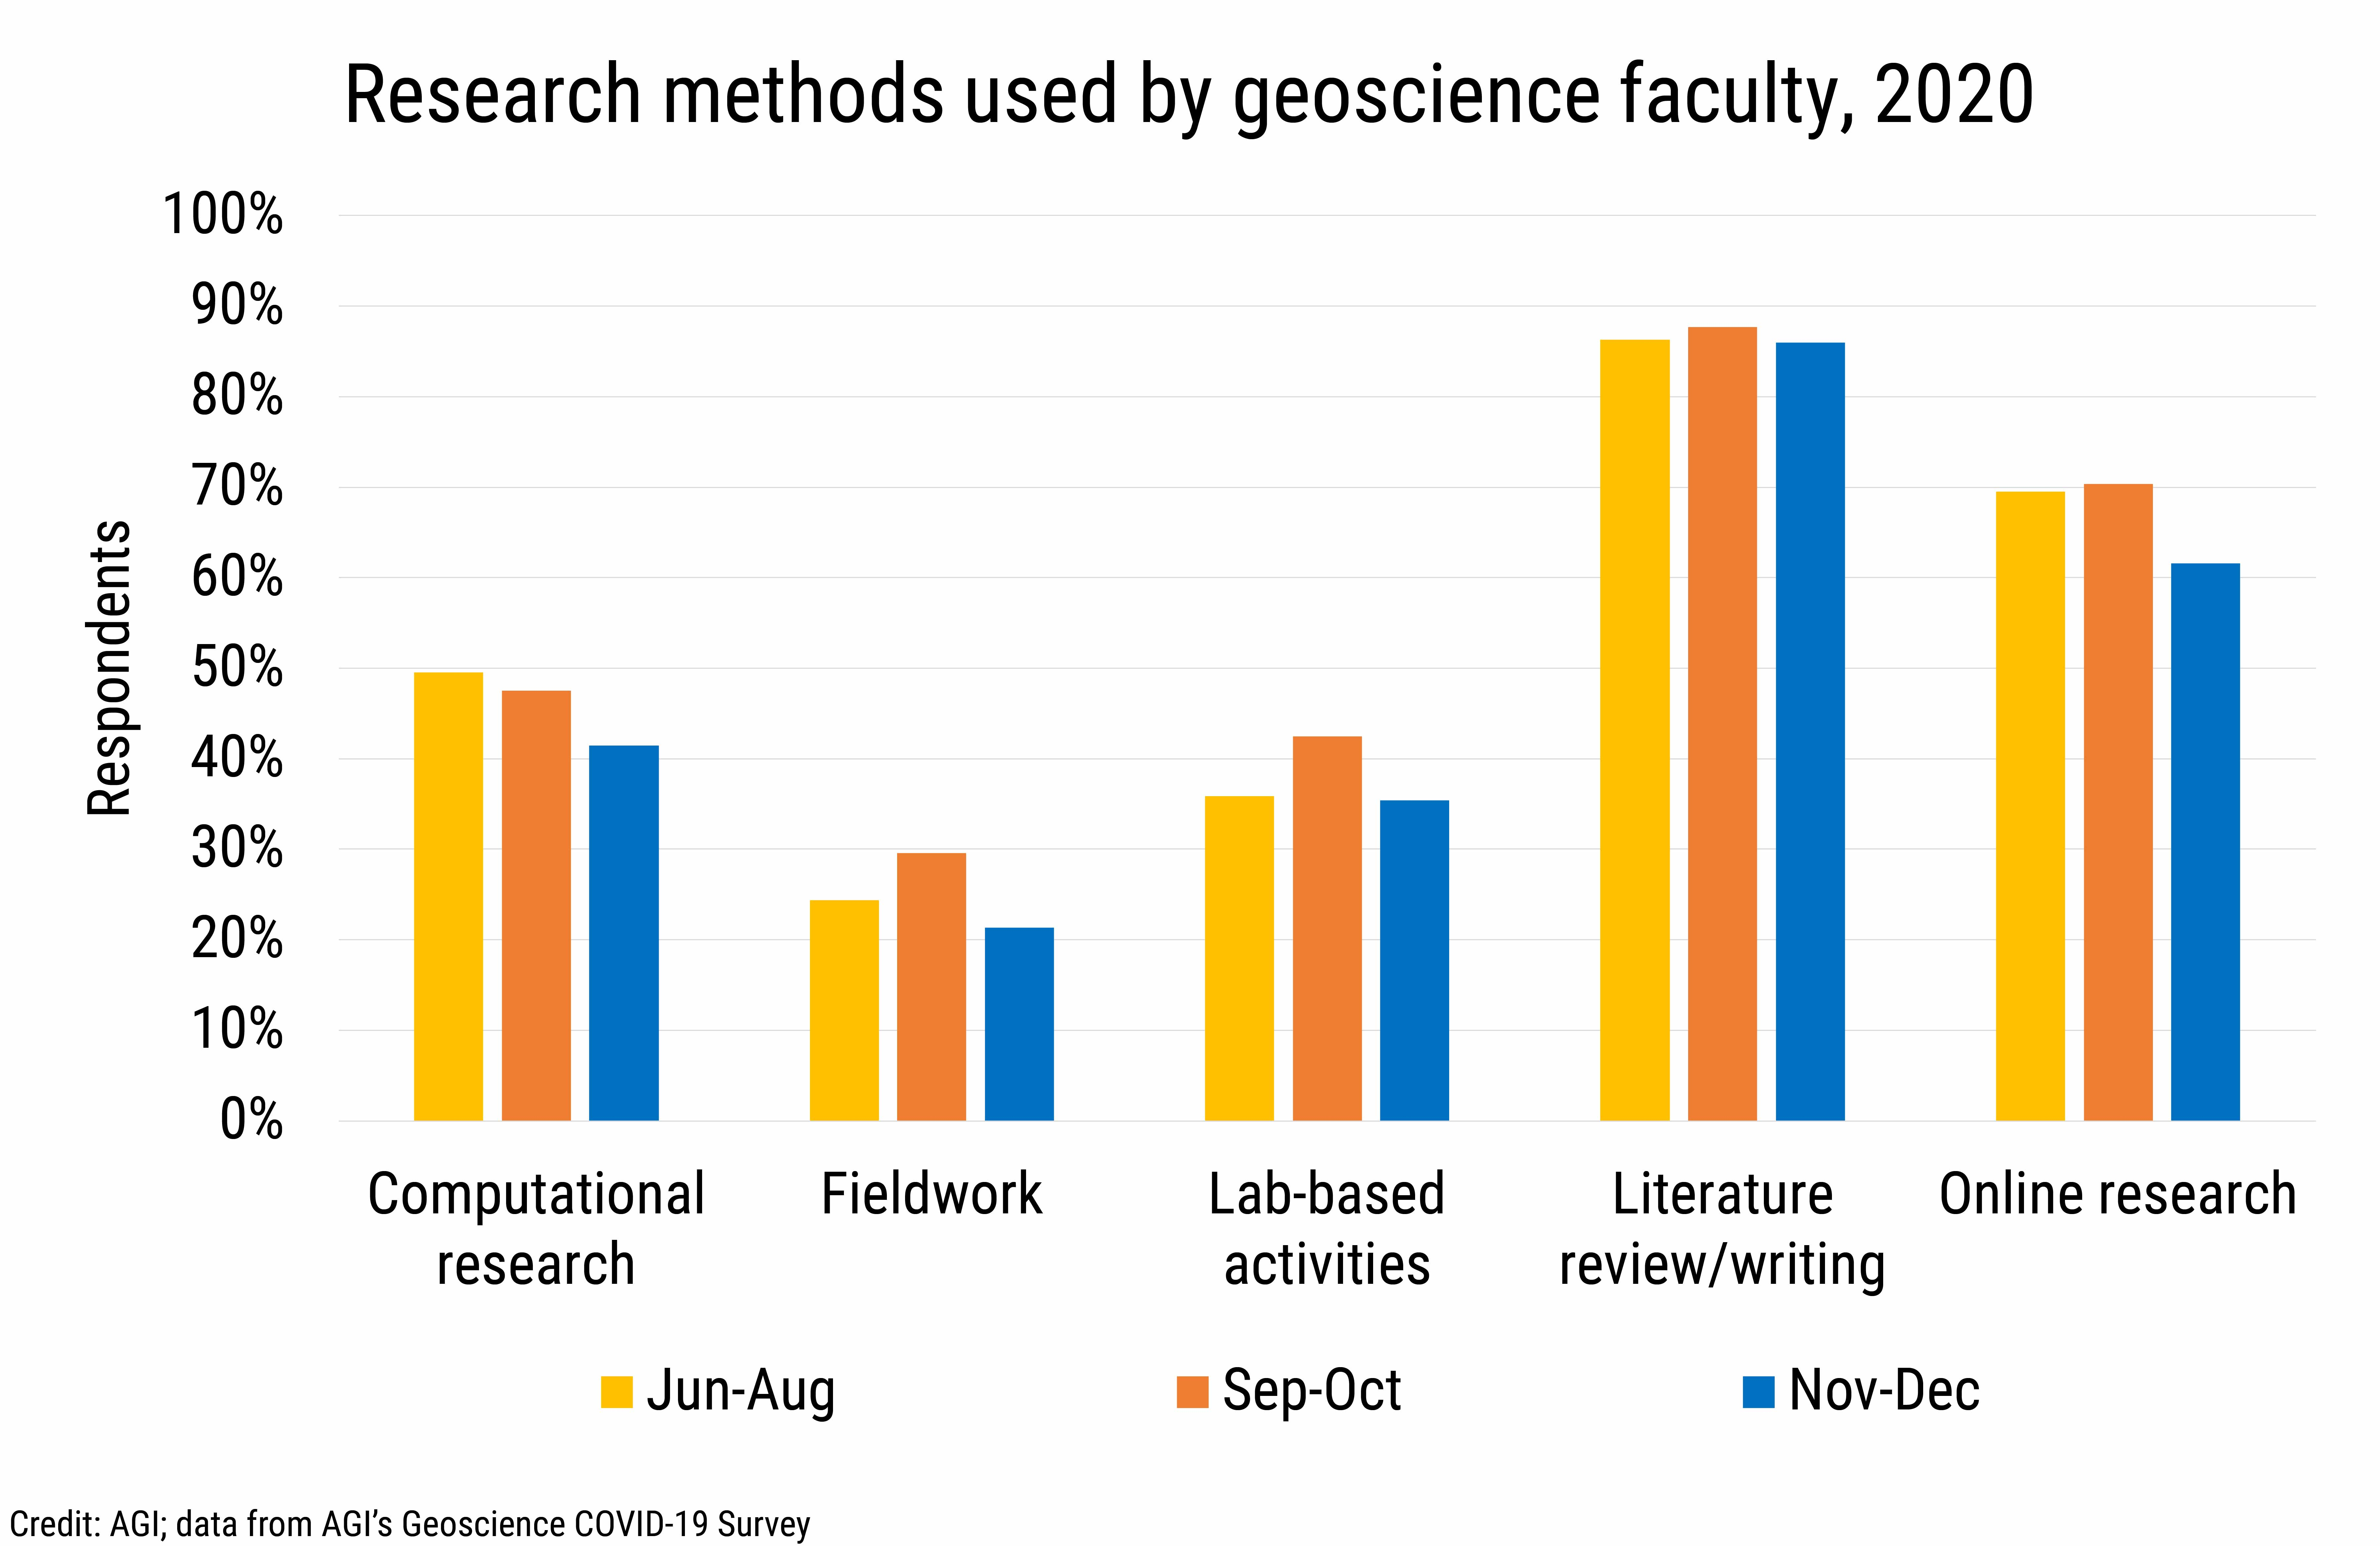 DB_2021-002 chart 02: Research methods used by geoscience faculty, 2020 (Credit: AGI; data from AGI's Geoscience COVID-19 Survey)